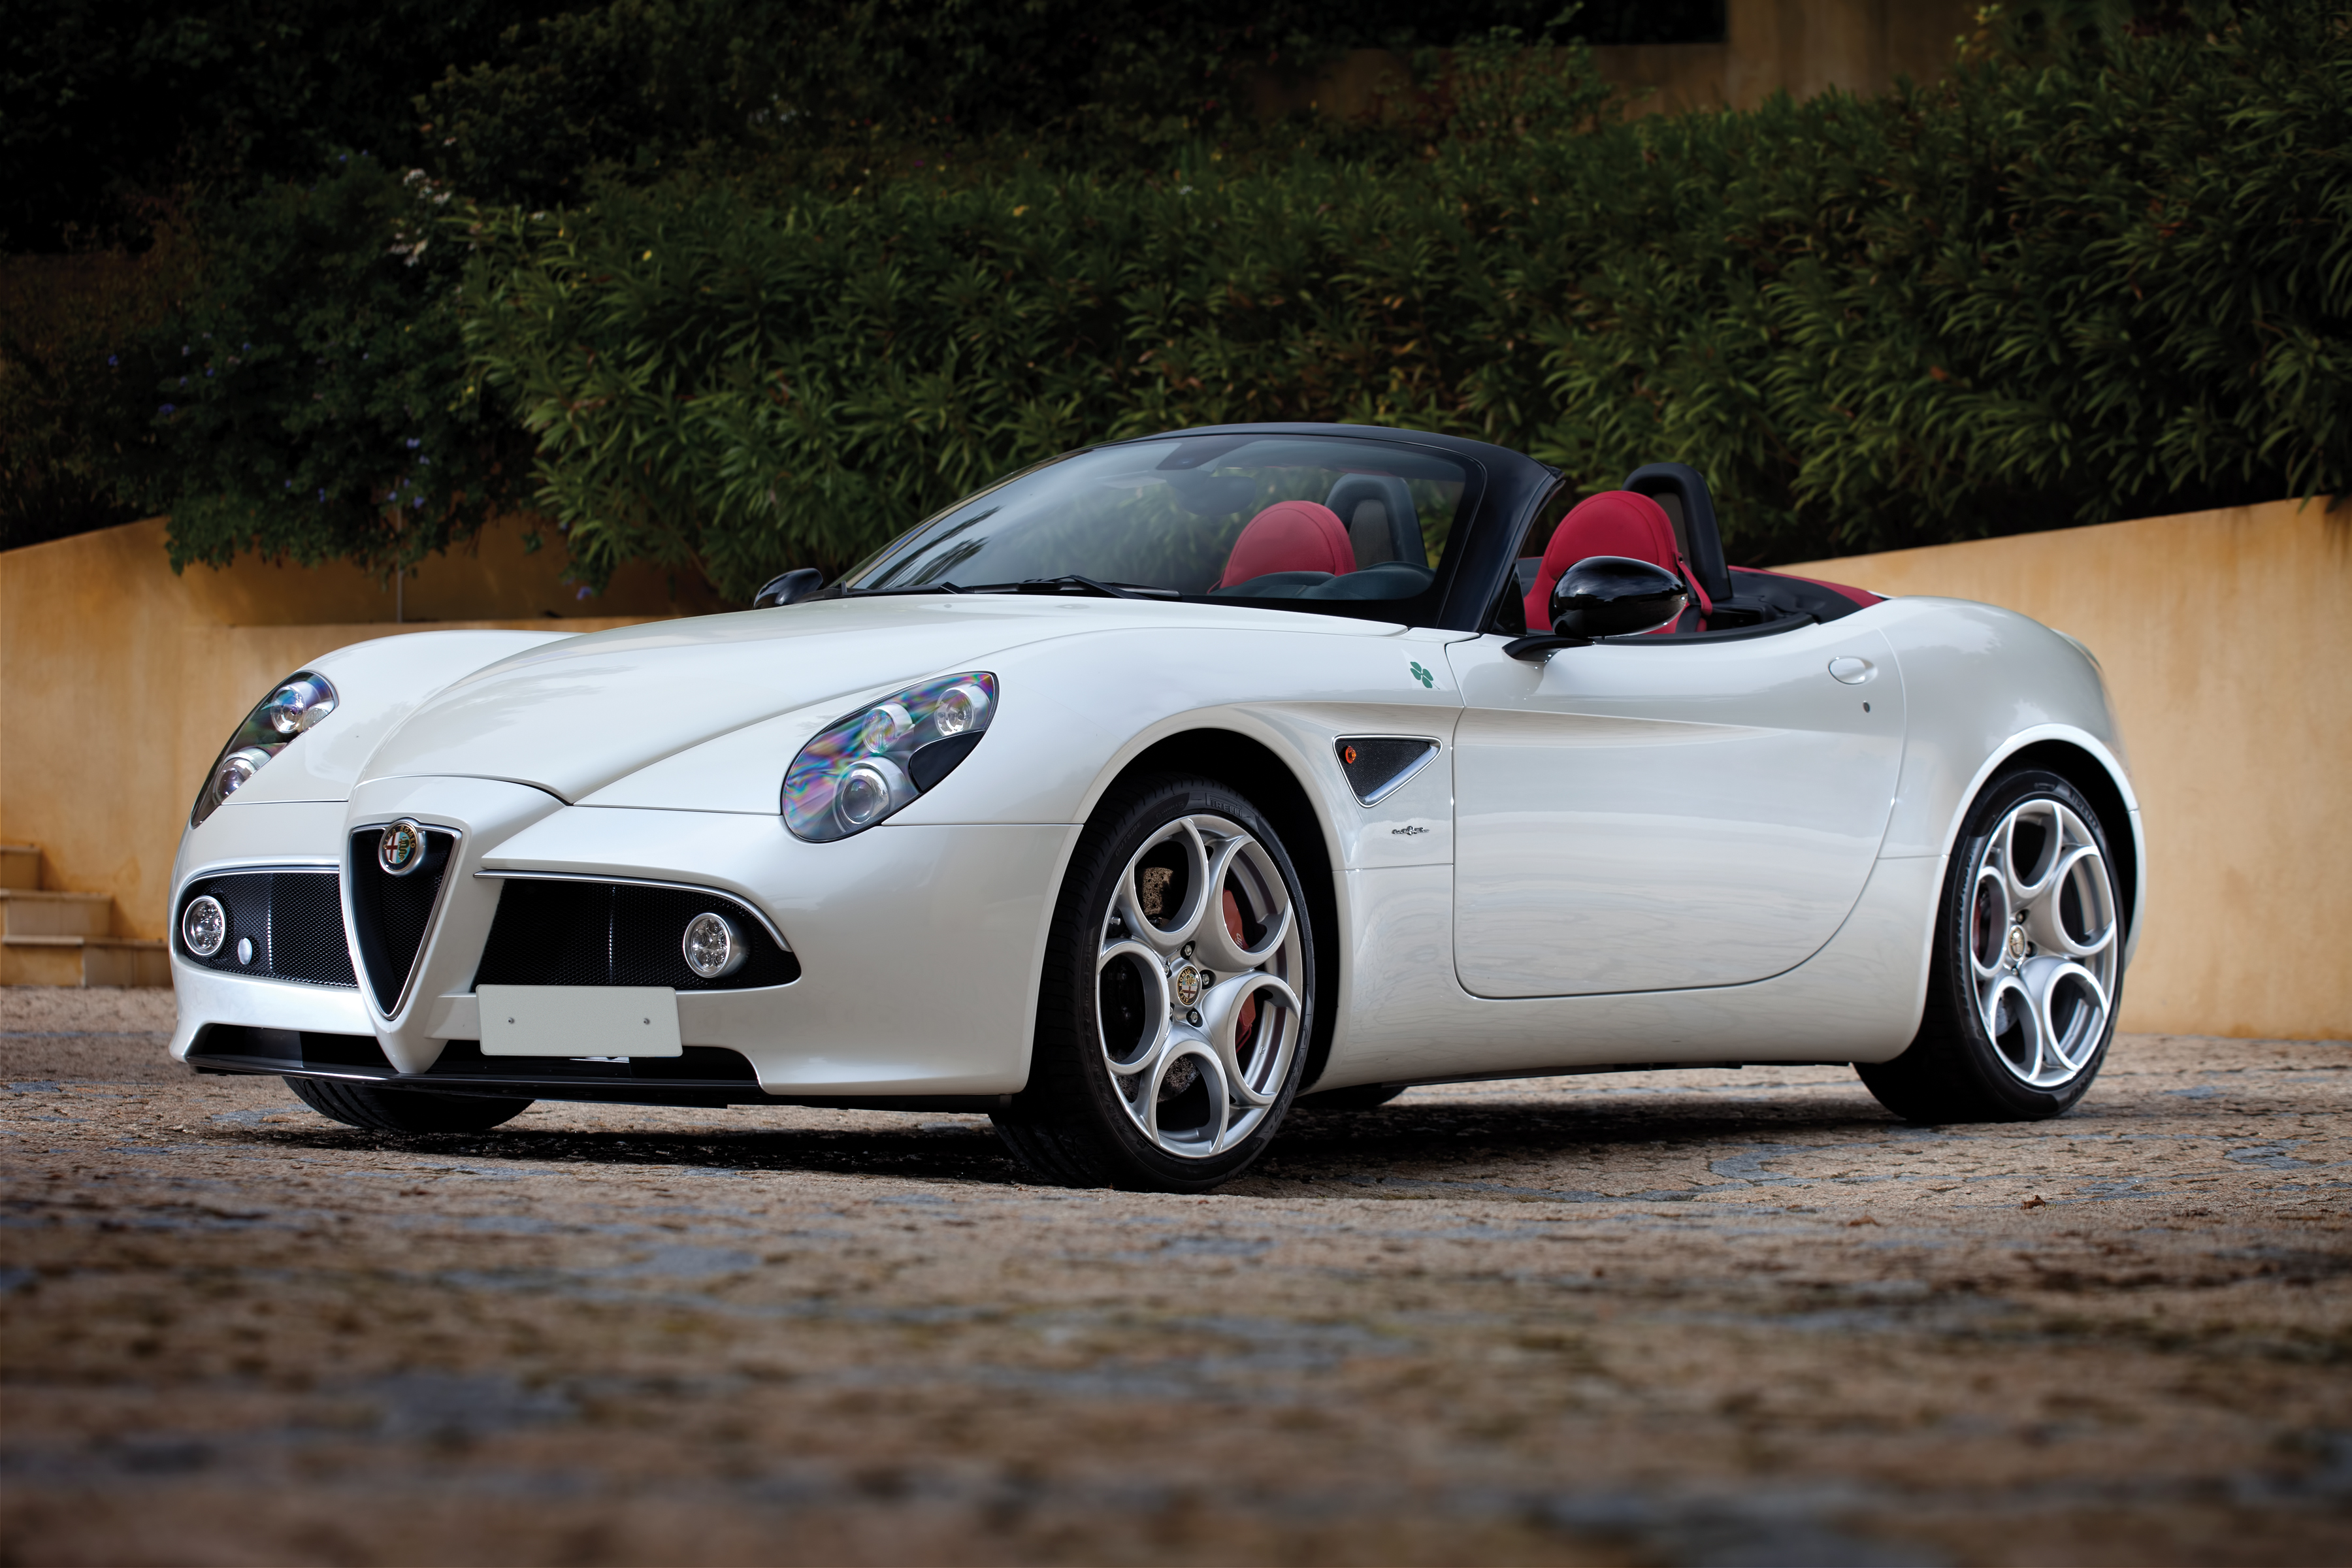 2018 Alfa Romeo 8C Spider photo - 1